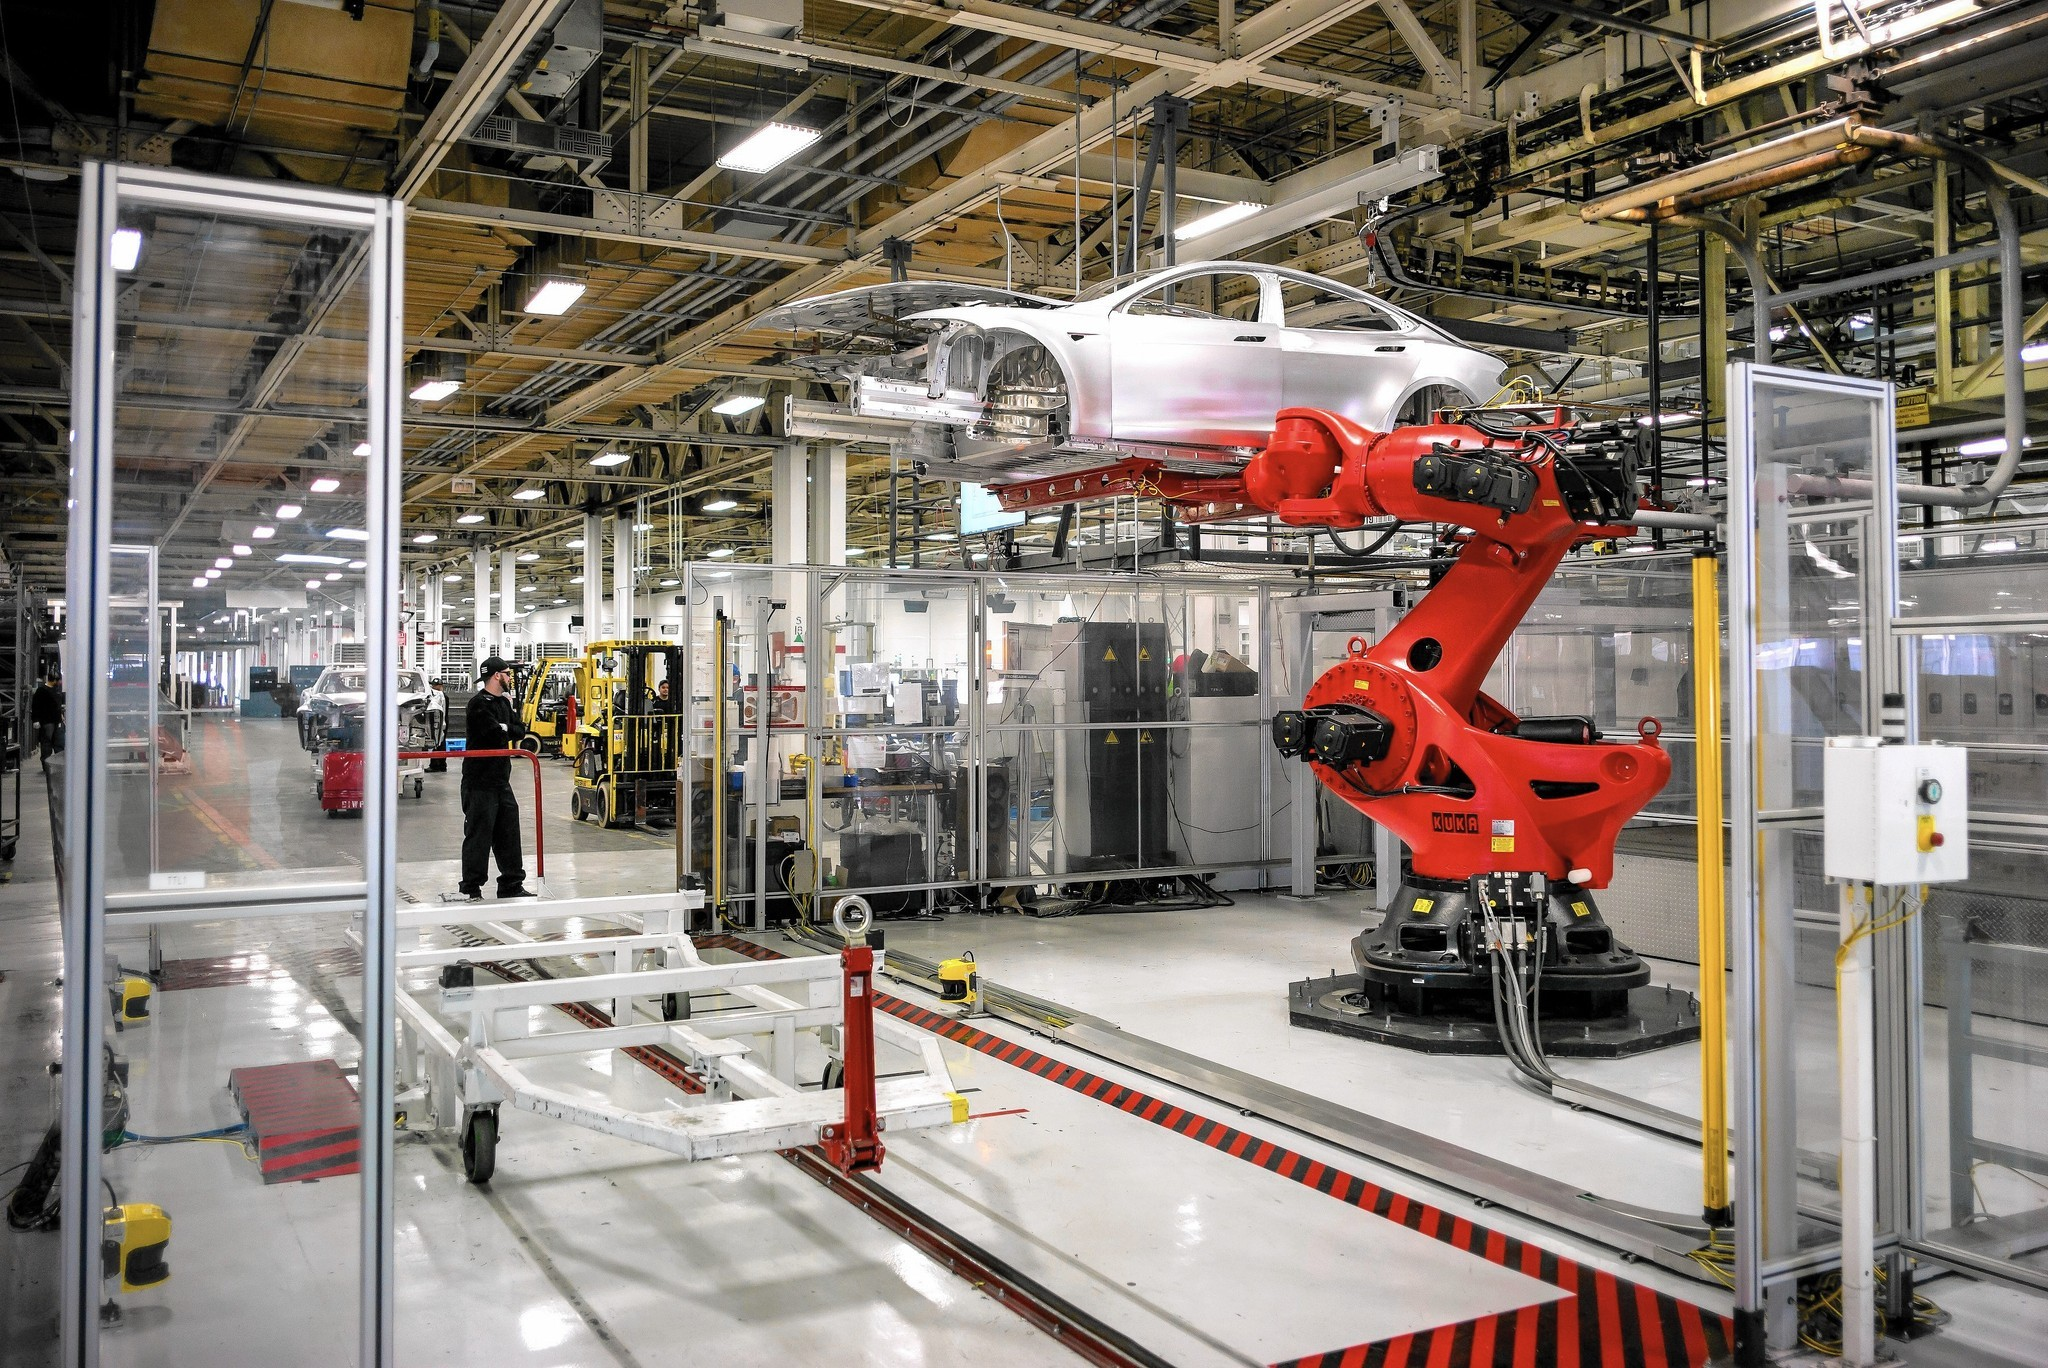 Scenes from the Tesla car factory. (David Butow / For the Times)